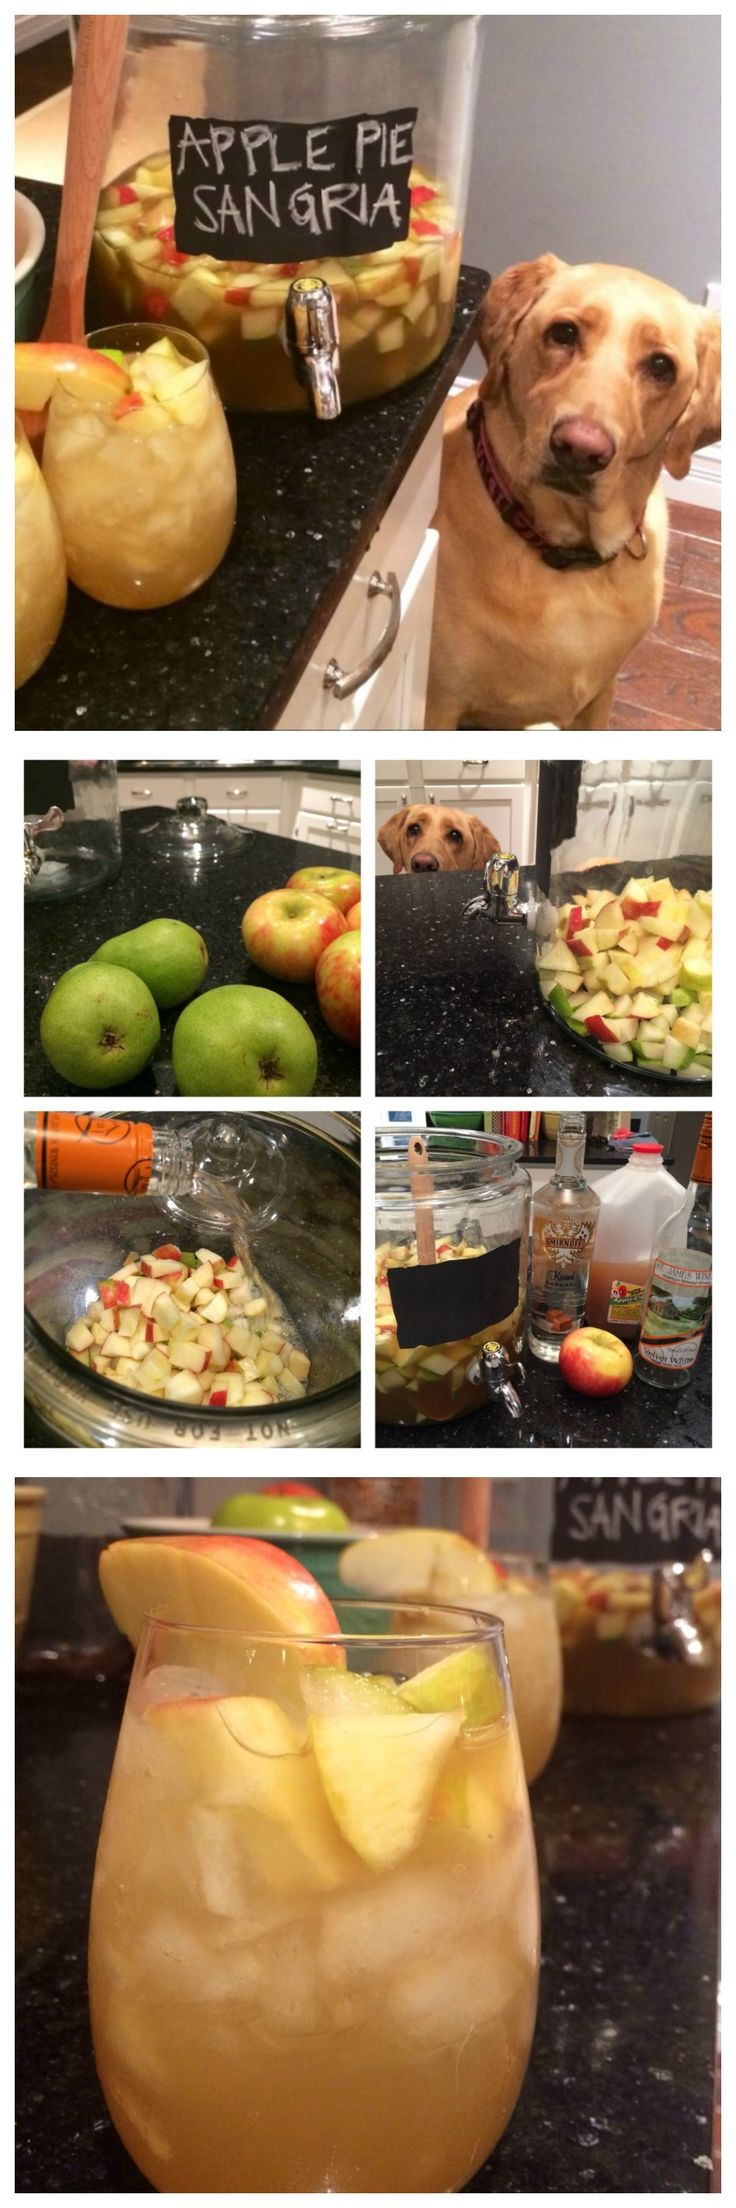 APPLE PIE SANGRIA!!